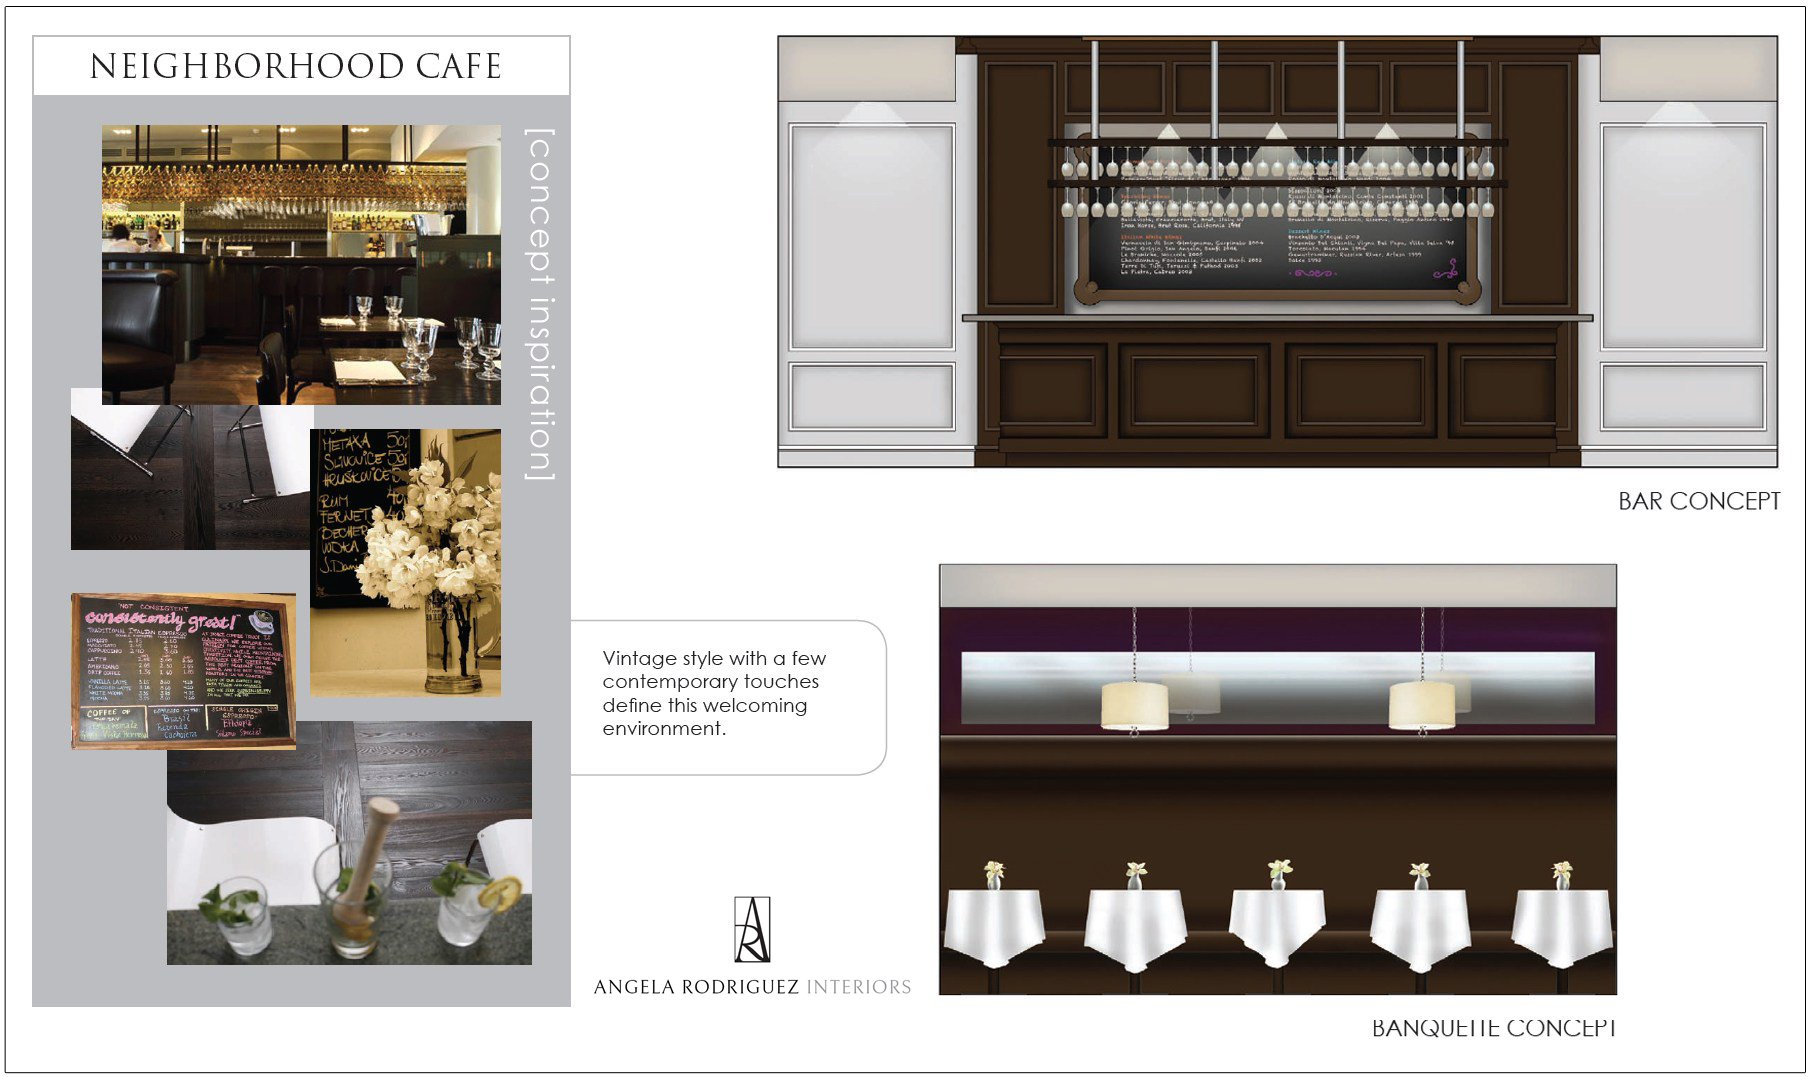 Design of a modern Italian cafe and bar with wood paneling